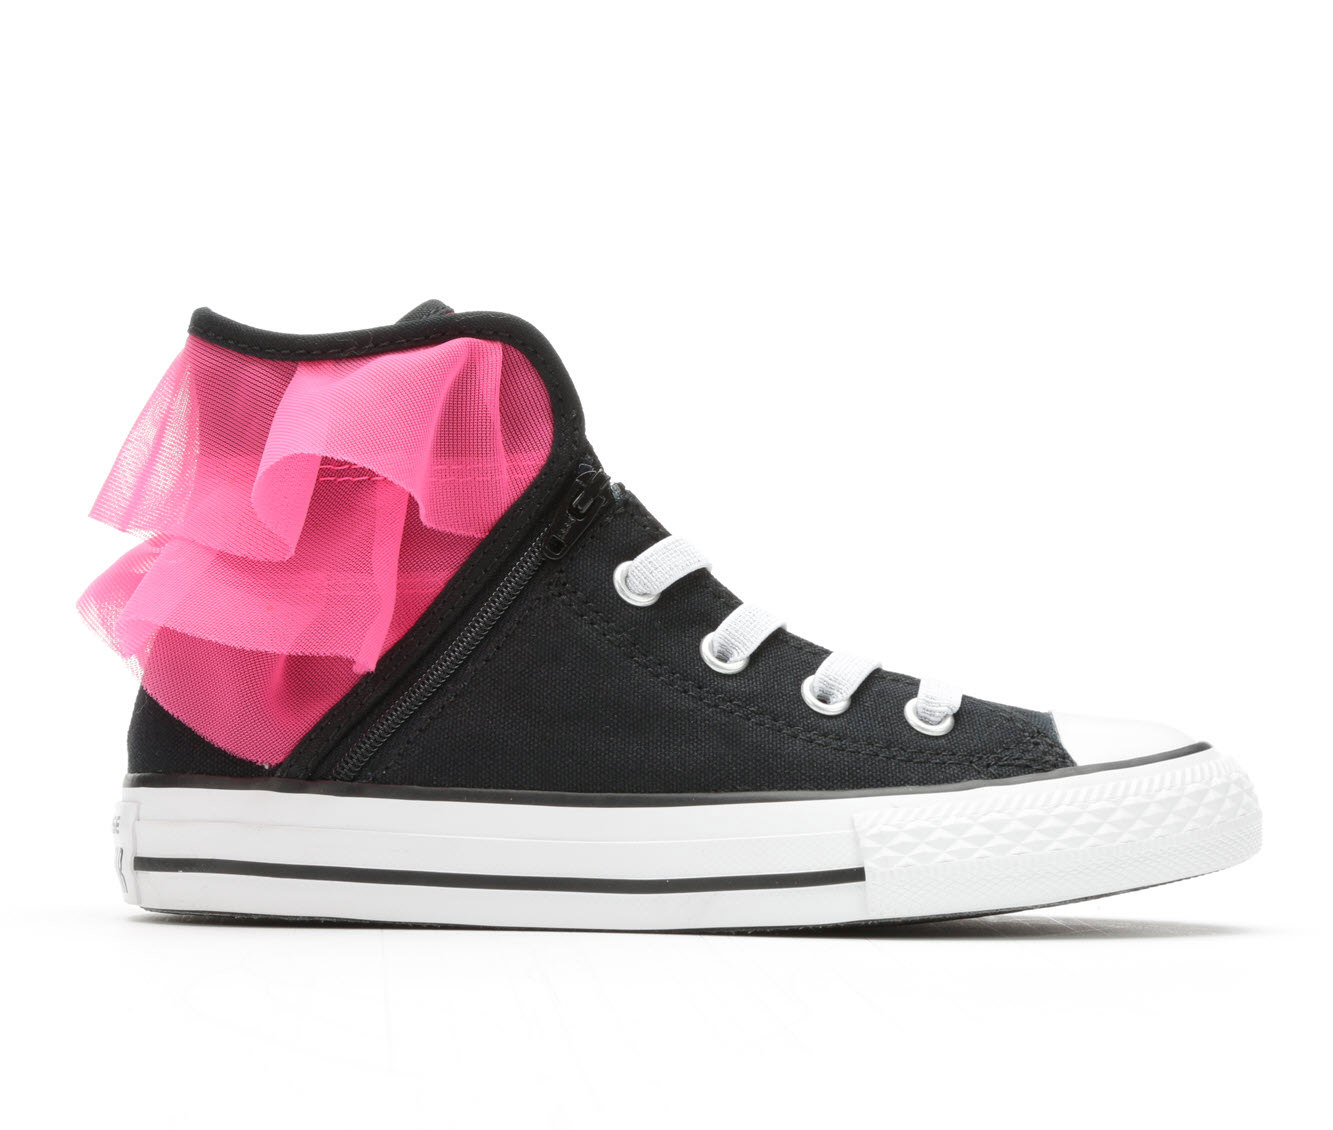 Girls' Converse Chuck Taylor All Star Block Party Hi Sneakers (Black)